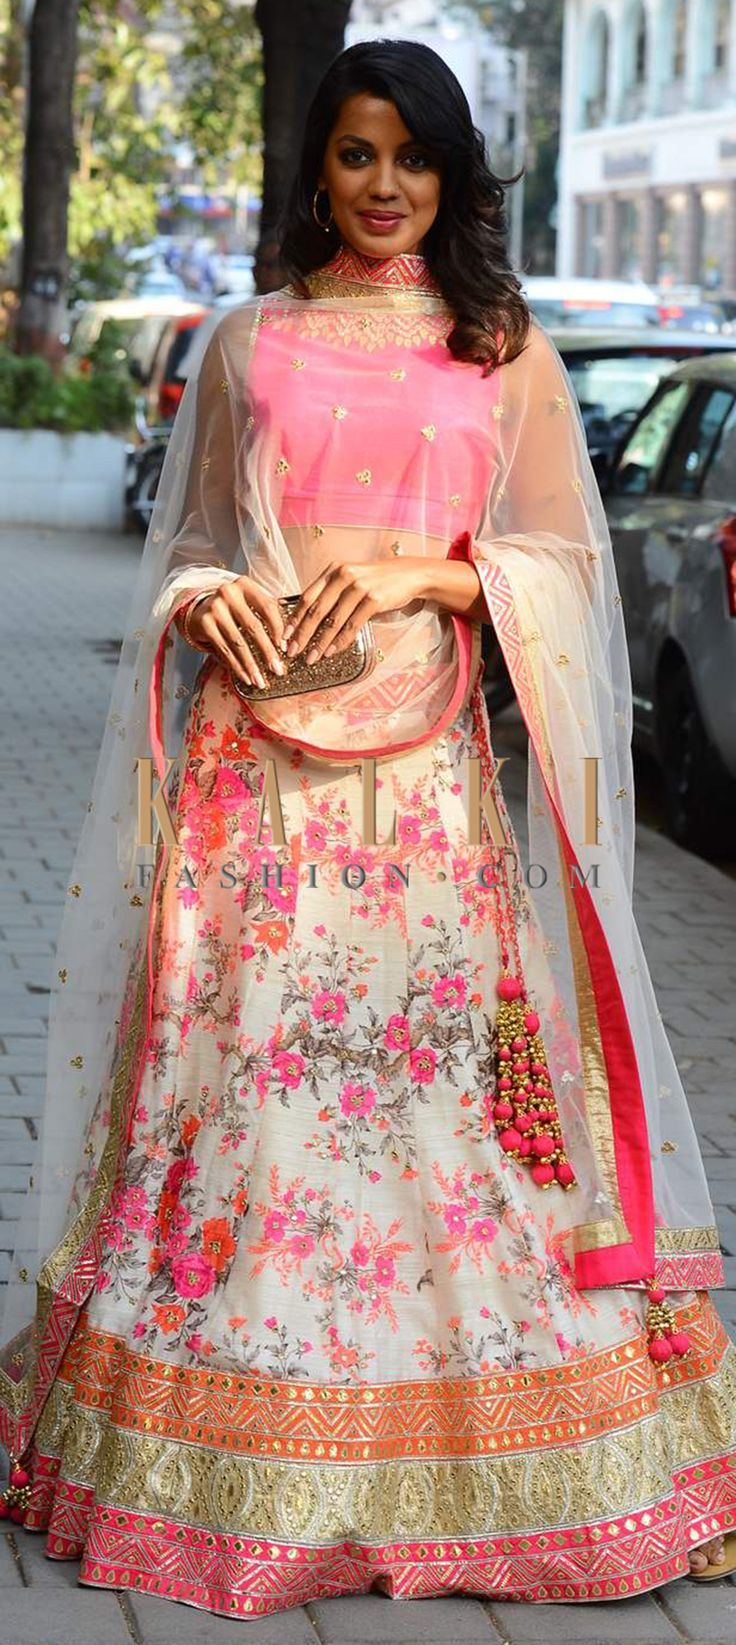 #lehenga #indianfashion #indianclothing